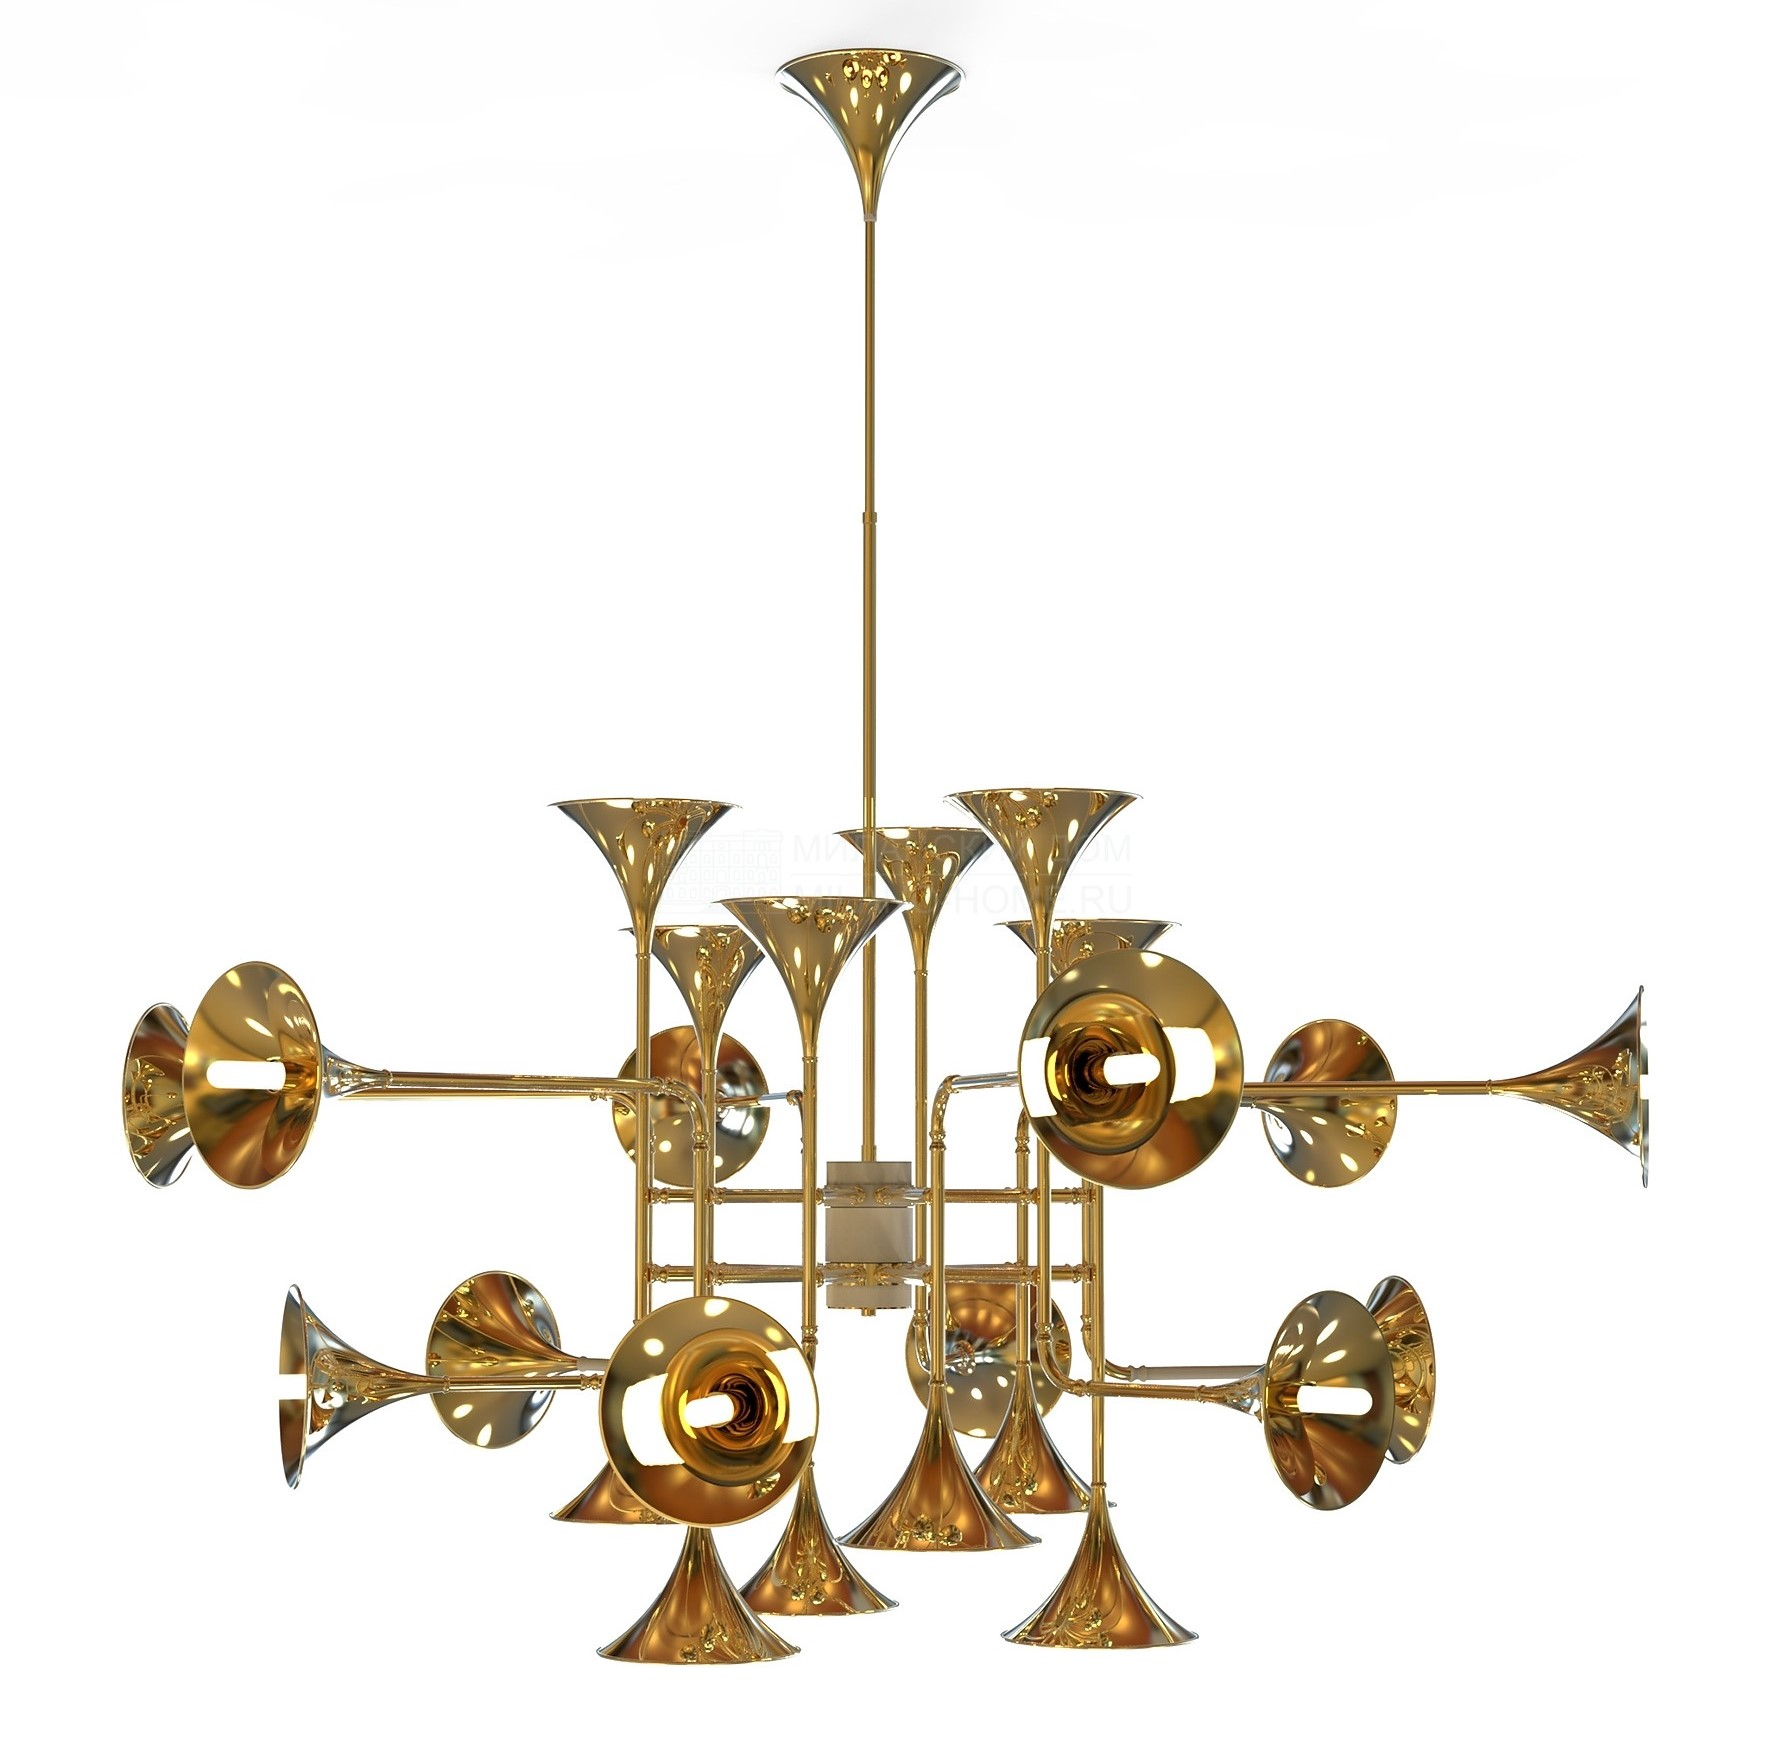 Have You Meet These Amazing Suspension Lamps Let Us Introduce To You 3